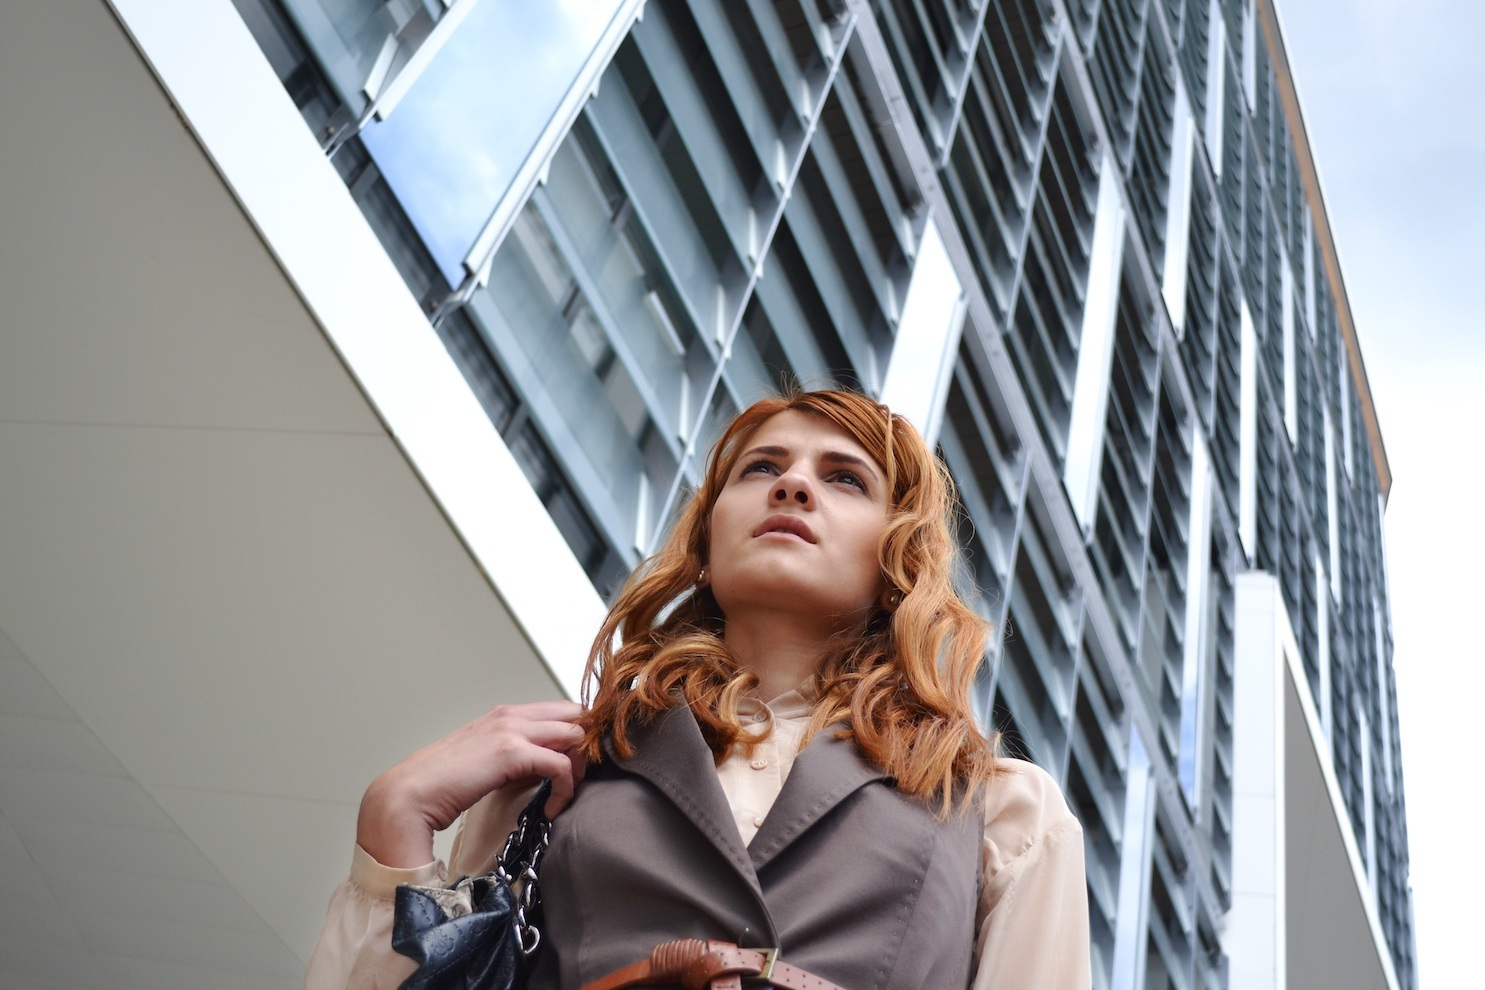 A woman in professional dress outside an office building, shot from below